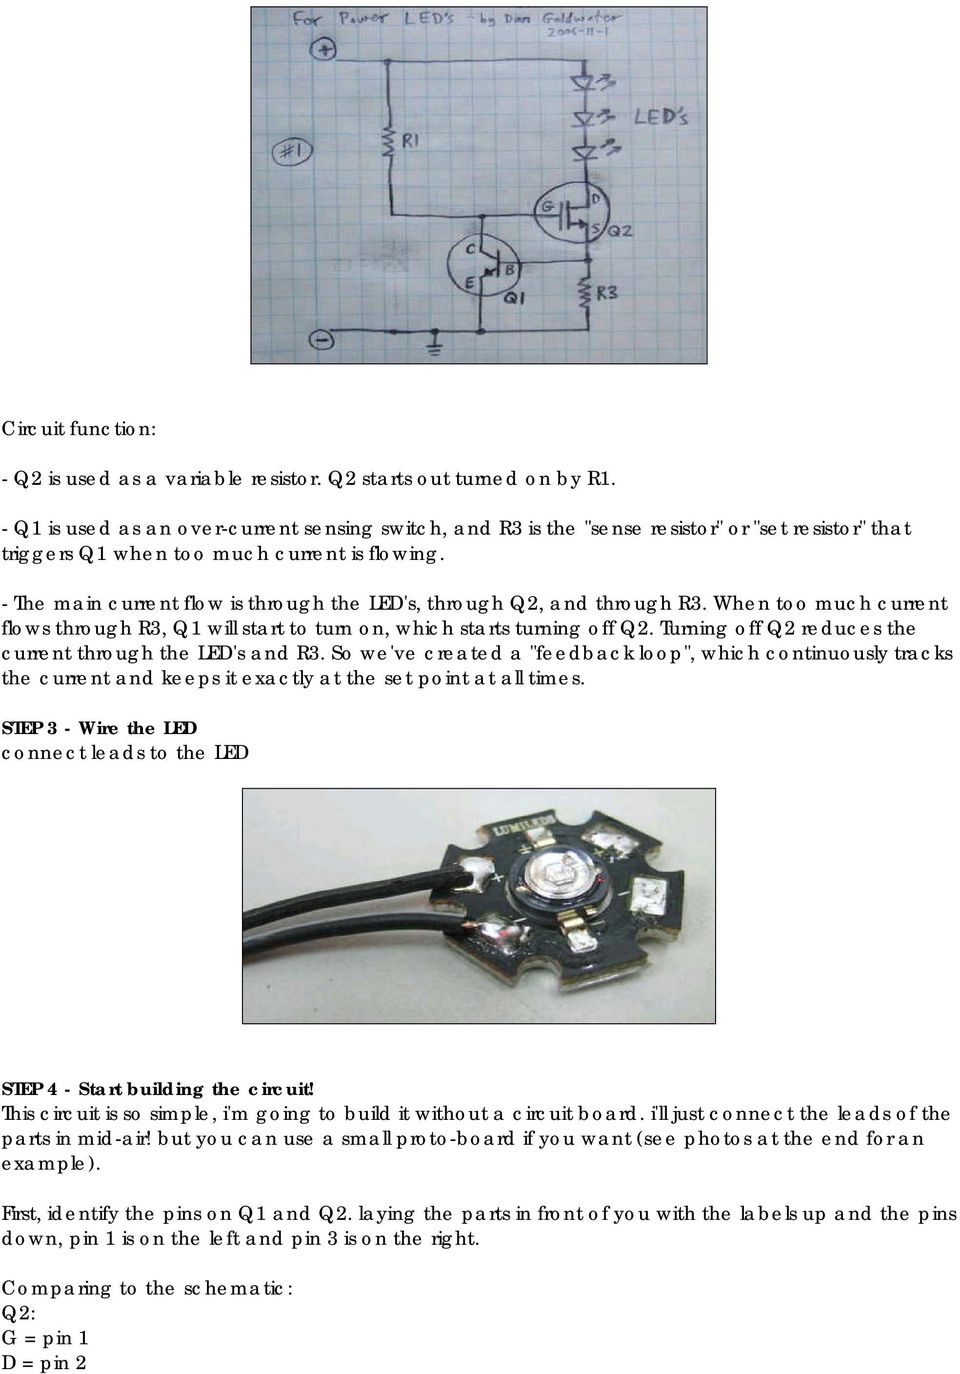 Power Leds Simplest Light With Constant Current Circuit Pdf For 5 Led Chaser Using 555 Chip Electronics Forum Circuits The Main Flow Is Through Q2 And R3